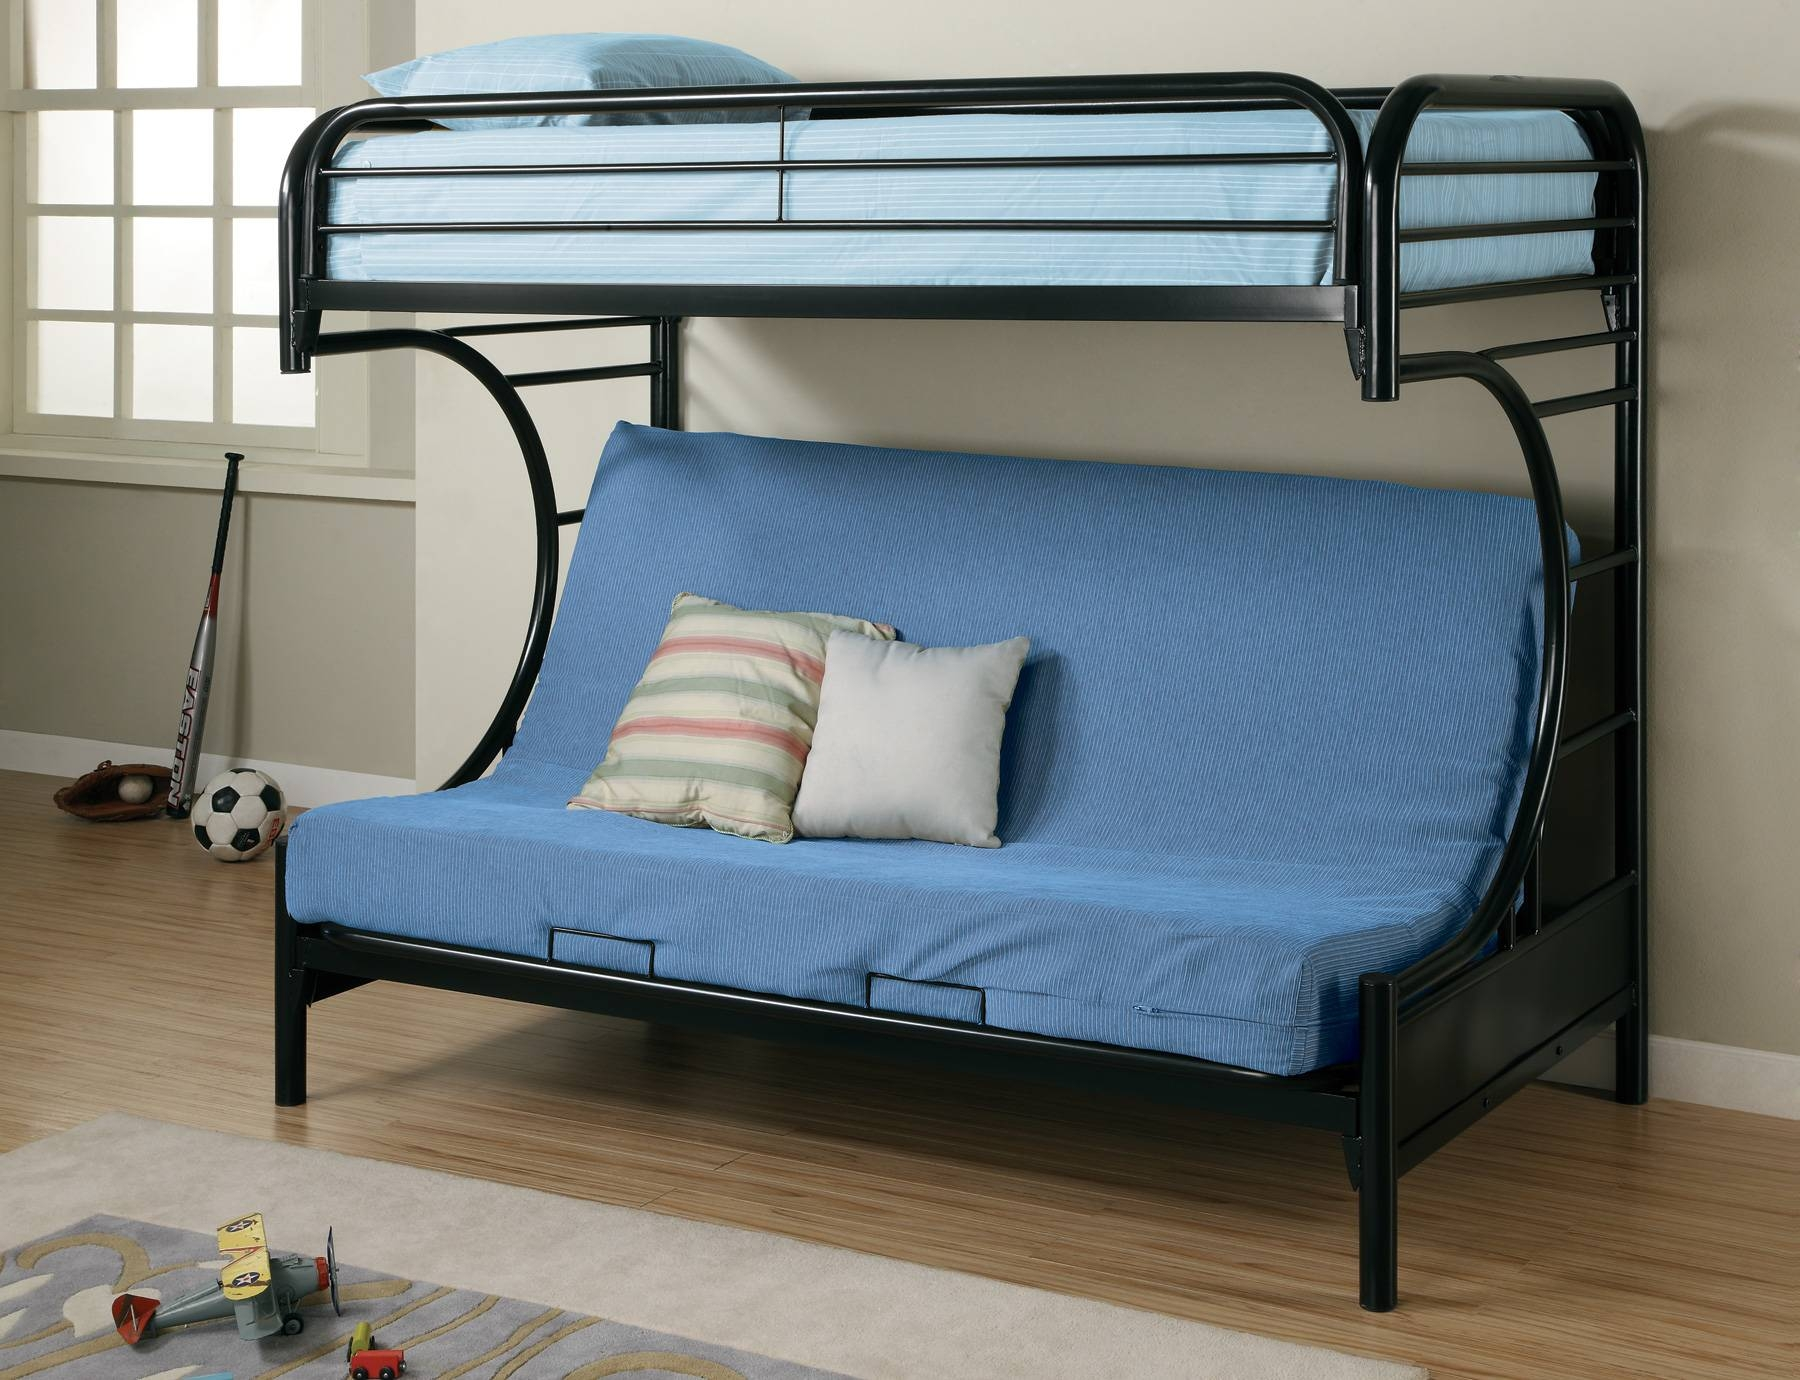 Convert Bunk Bed Couch Beds Style Image Of Blue ~ Idolza with regard to Sofas Converts To Bunk Bed (Image 3 of 15)